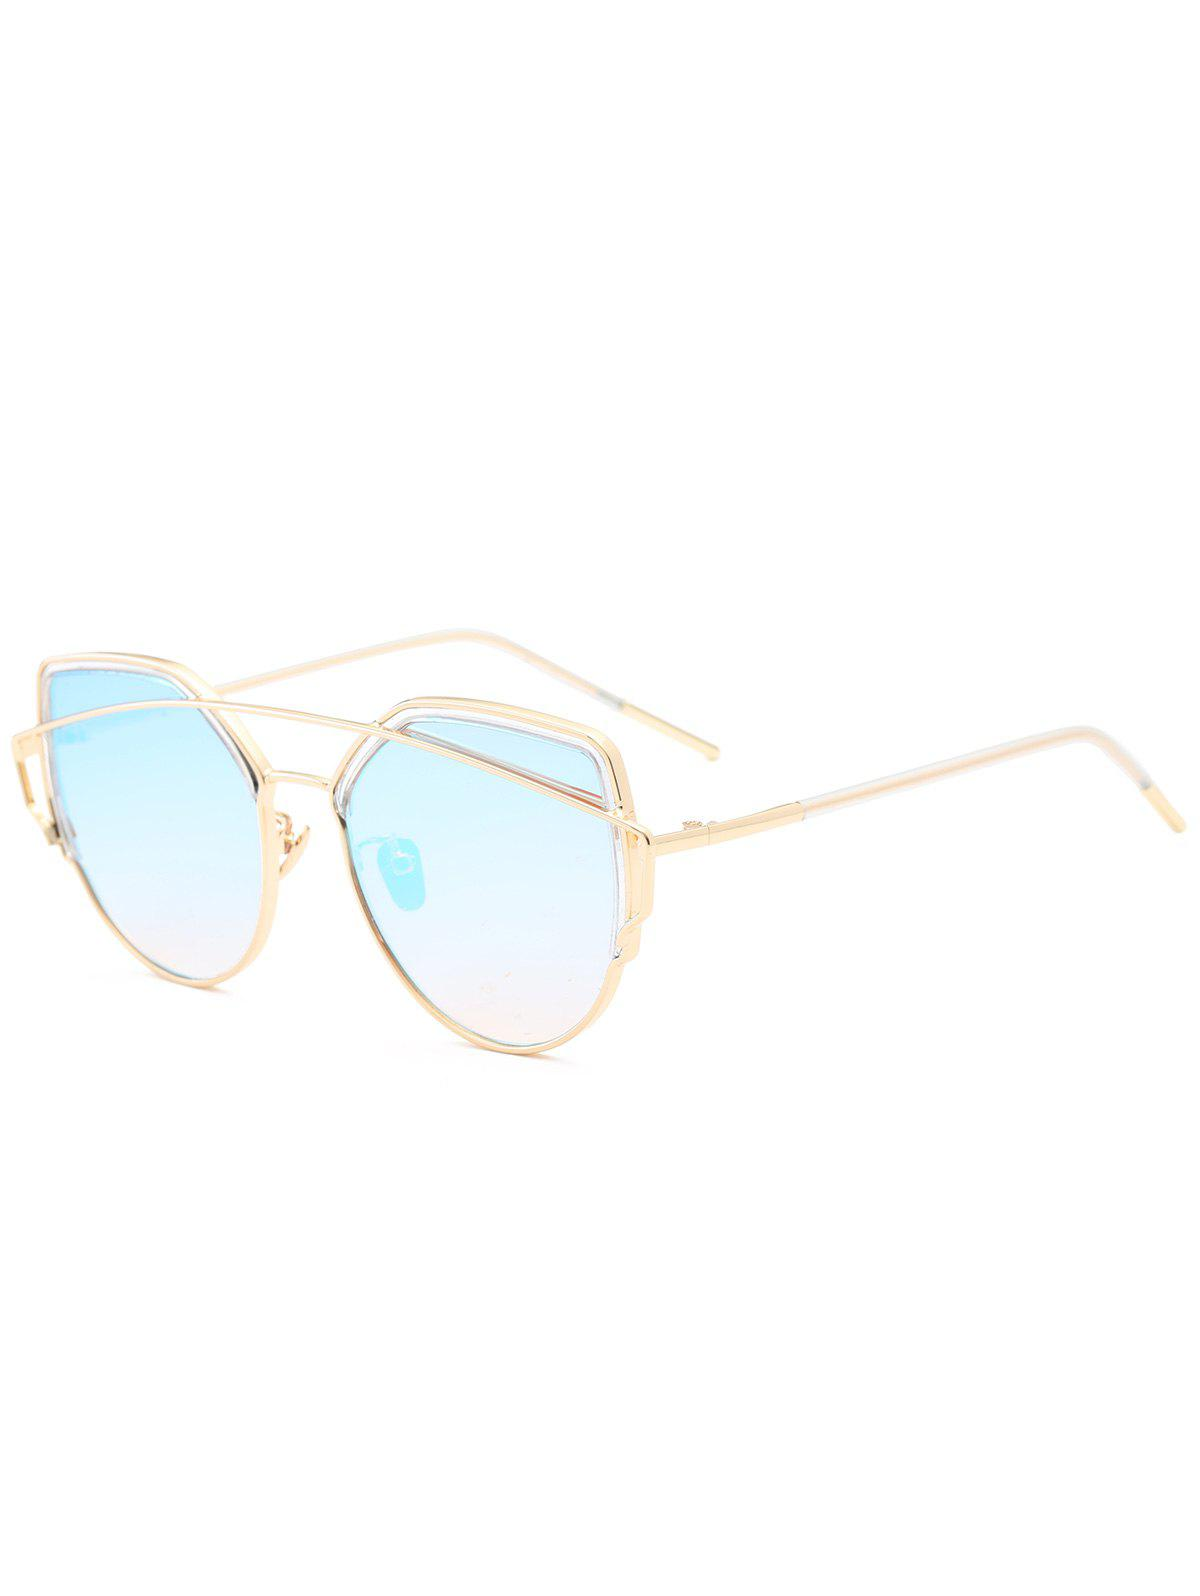 Metal Long Crossbar Cat Eye Sunglasses - LIGHT BLUE